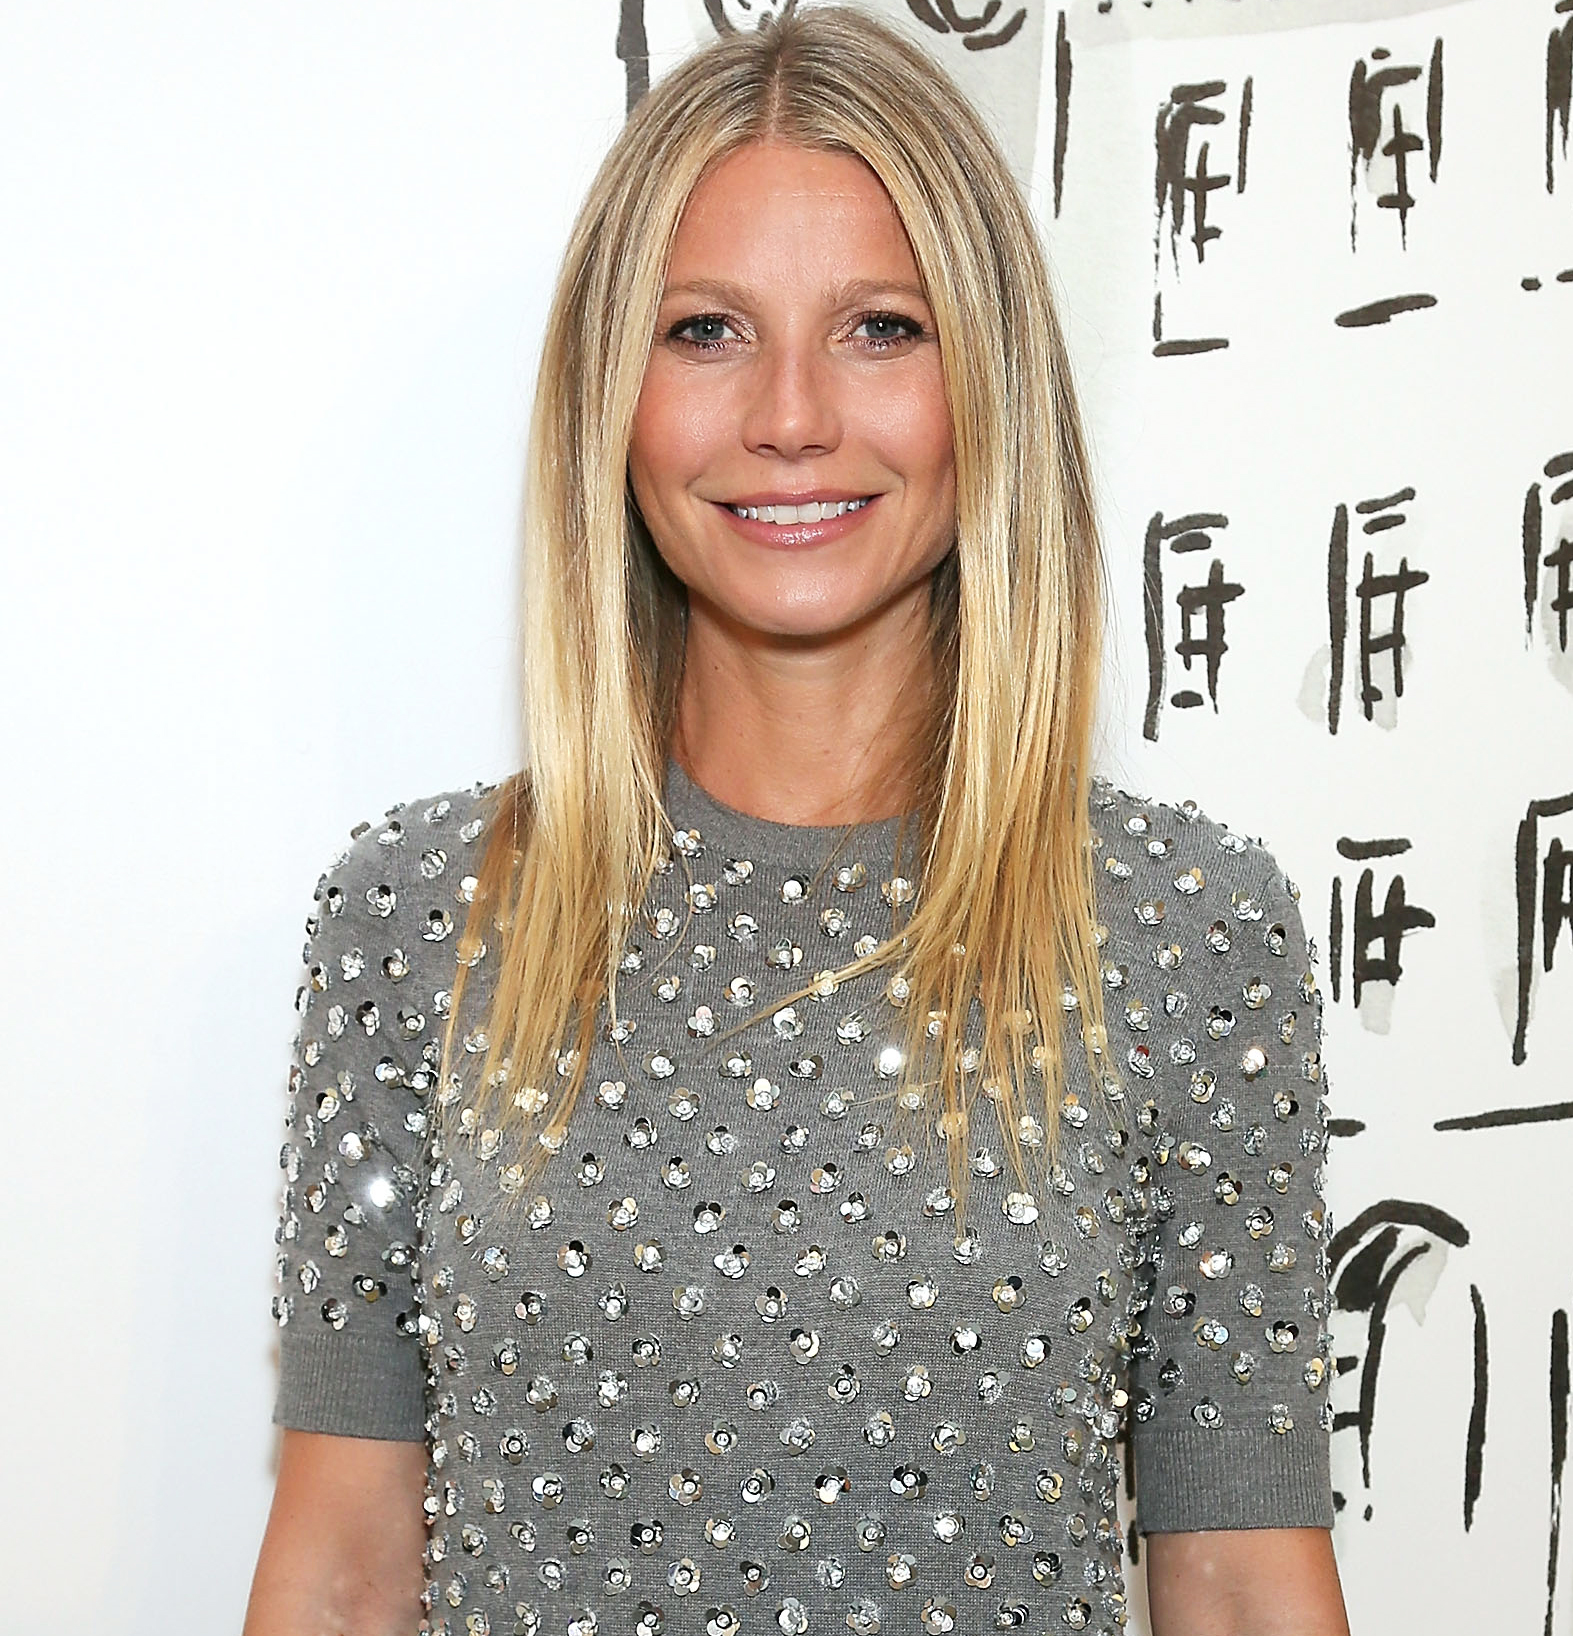 Gwyneth Paltrow Celebrates Her Bachelorette Party in a Bikini in Mexico